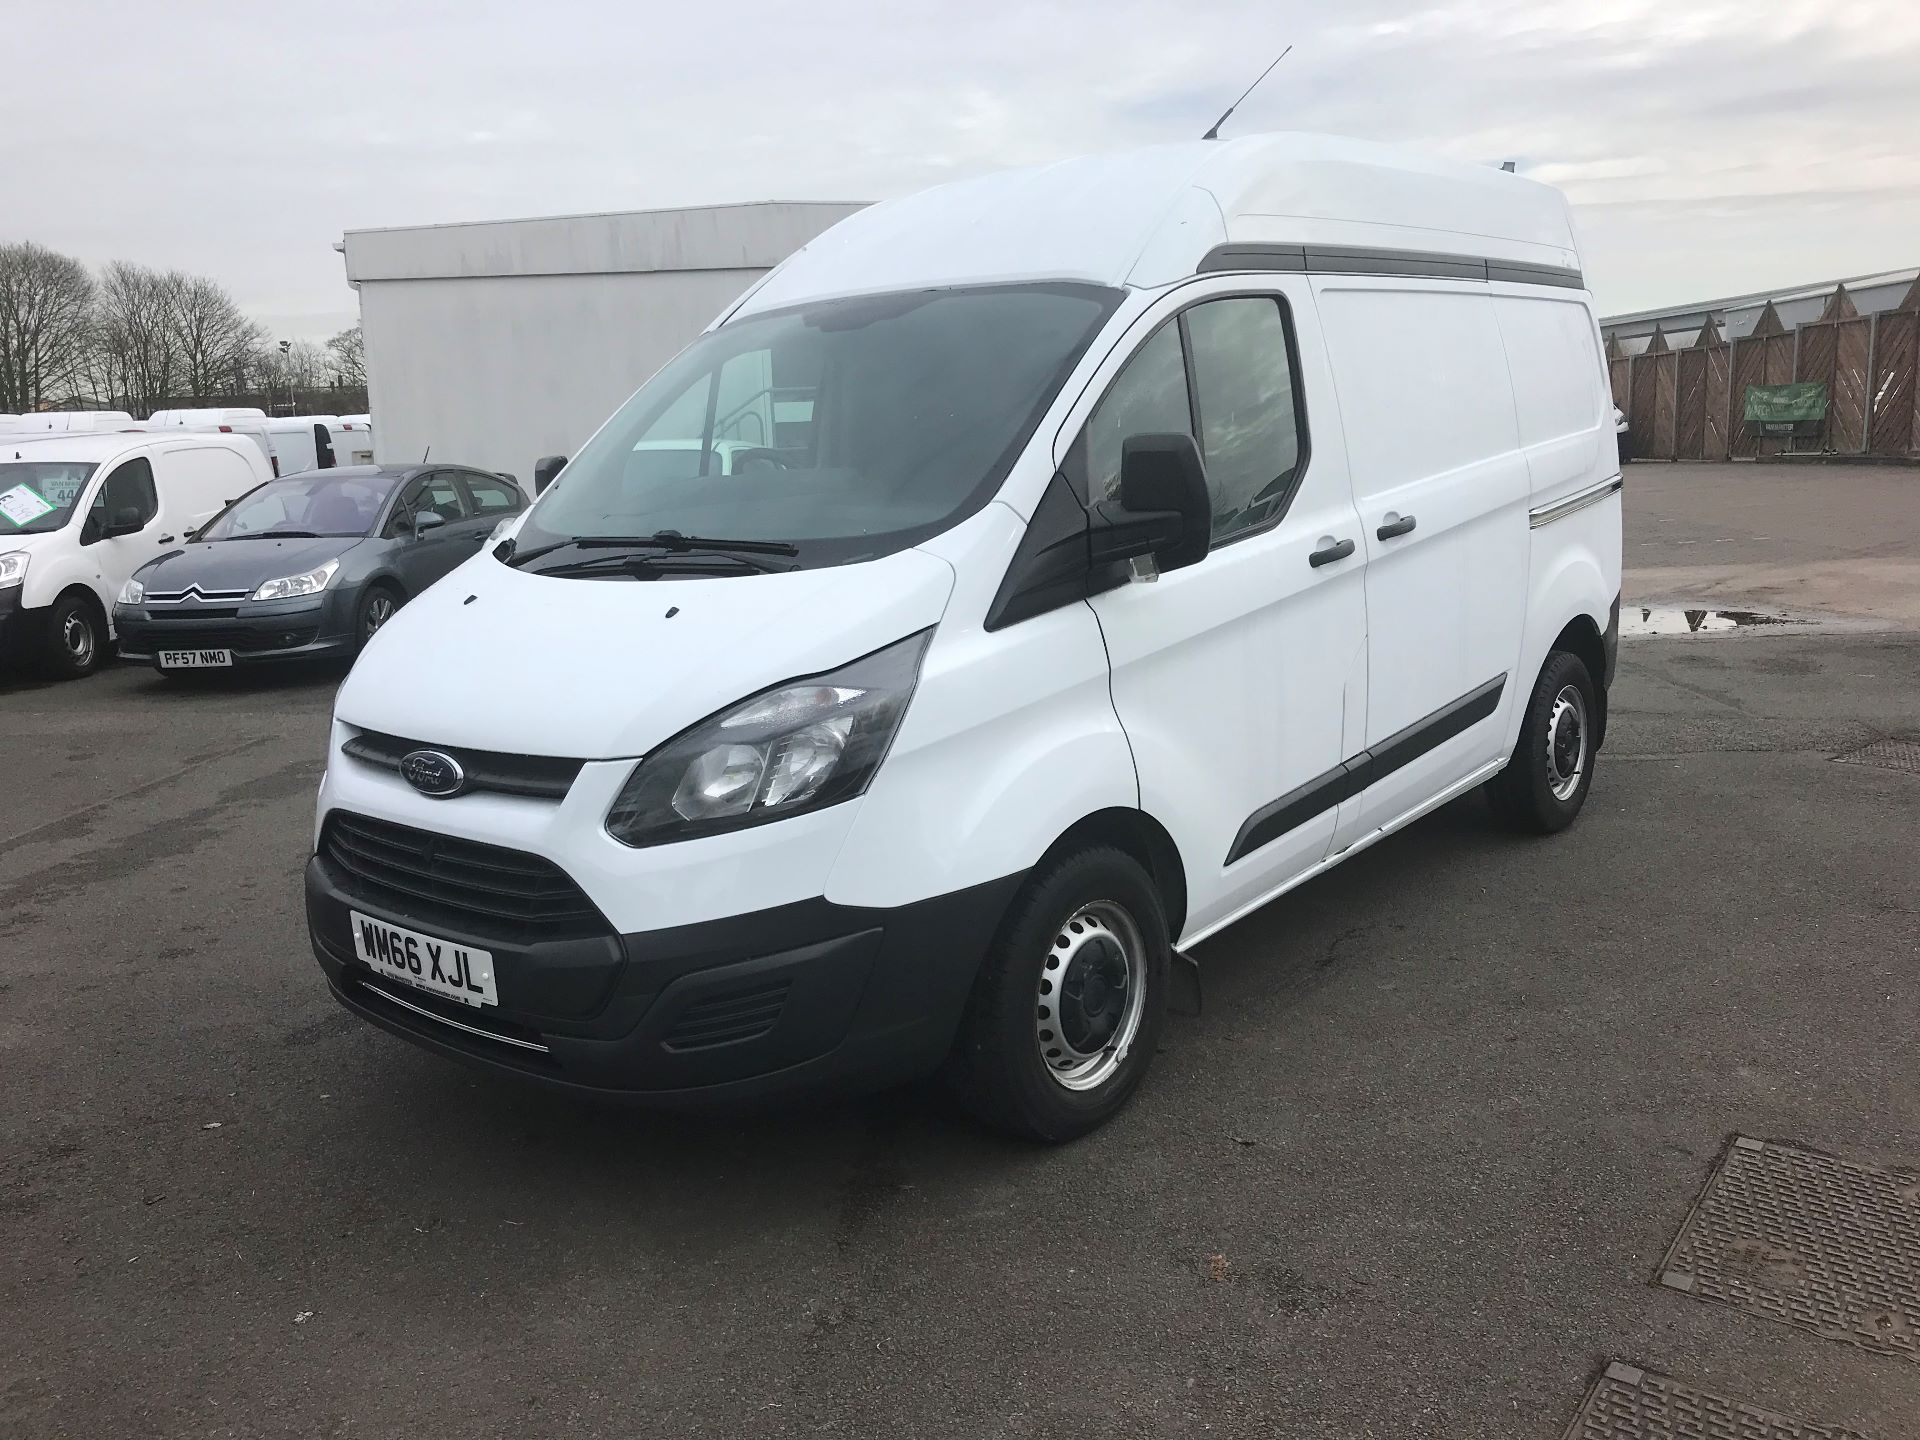 2016 Ford Transit Custom 2.0 TDCI 130PS HIGH ROOF VAN EURO 6 (WM66XJL) Image 3